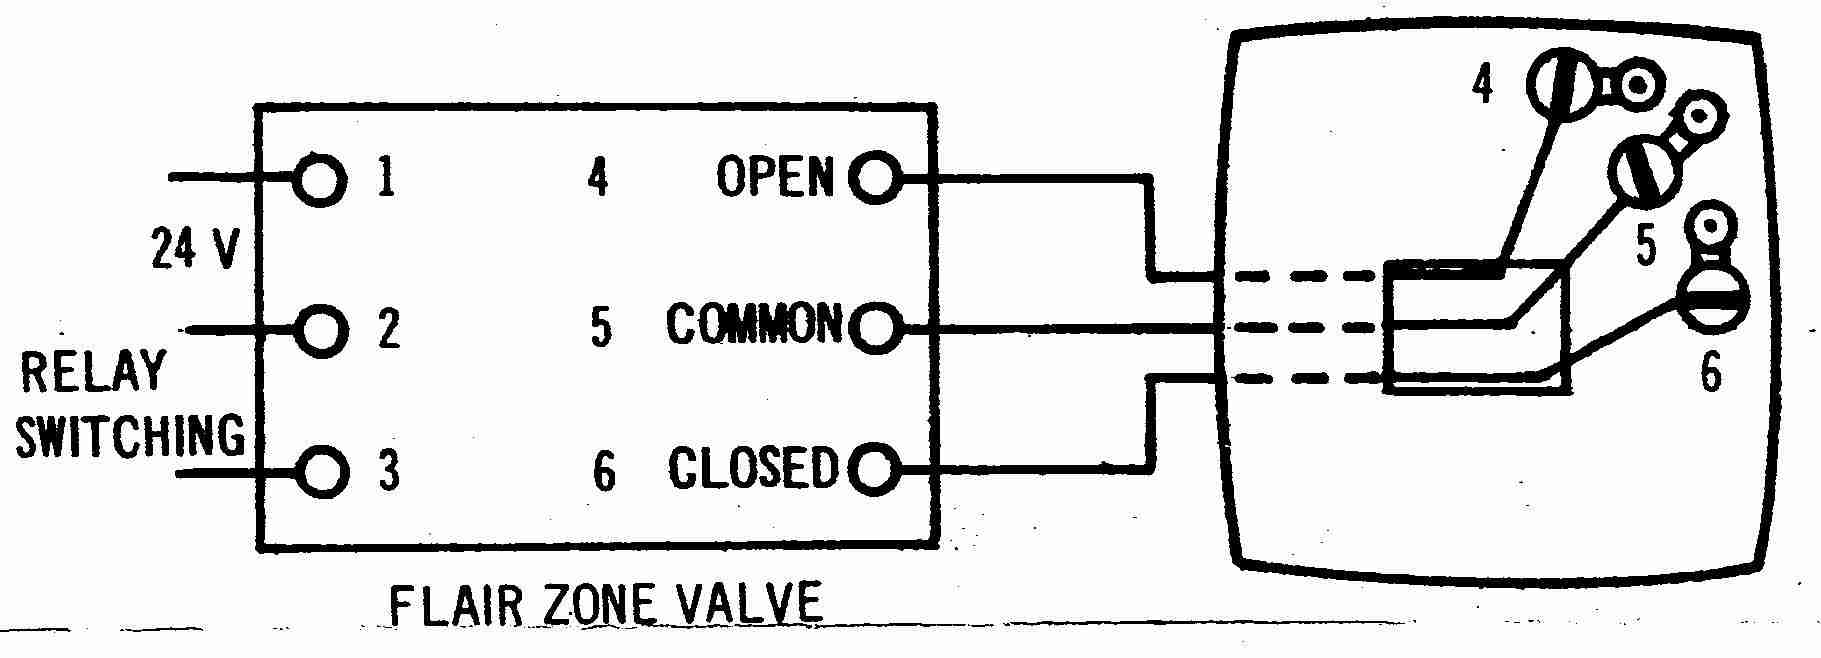 zone valve wiring installation & instructions guide to heating furnace thermostat wiring diagram flair 3 wire thermostat wiring controlling a zone valve